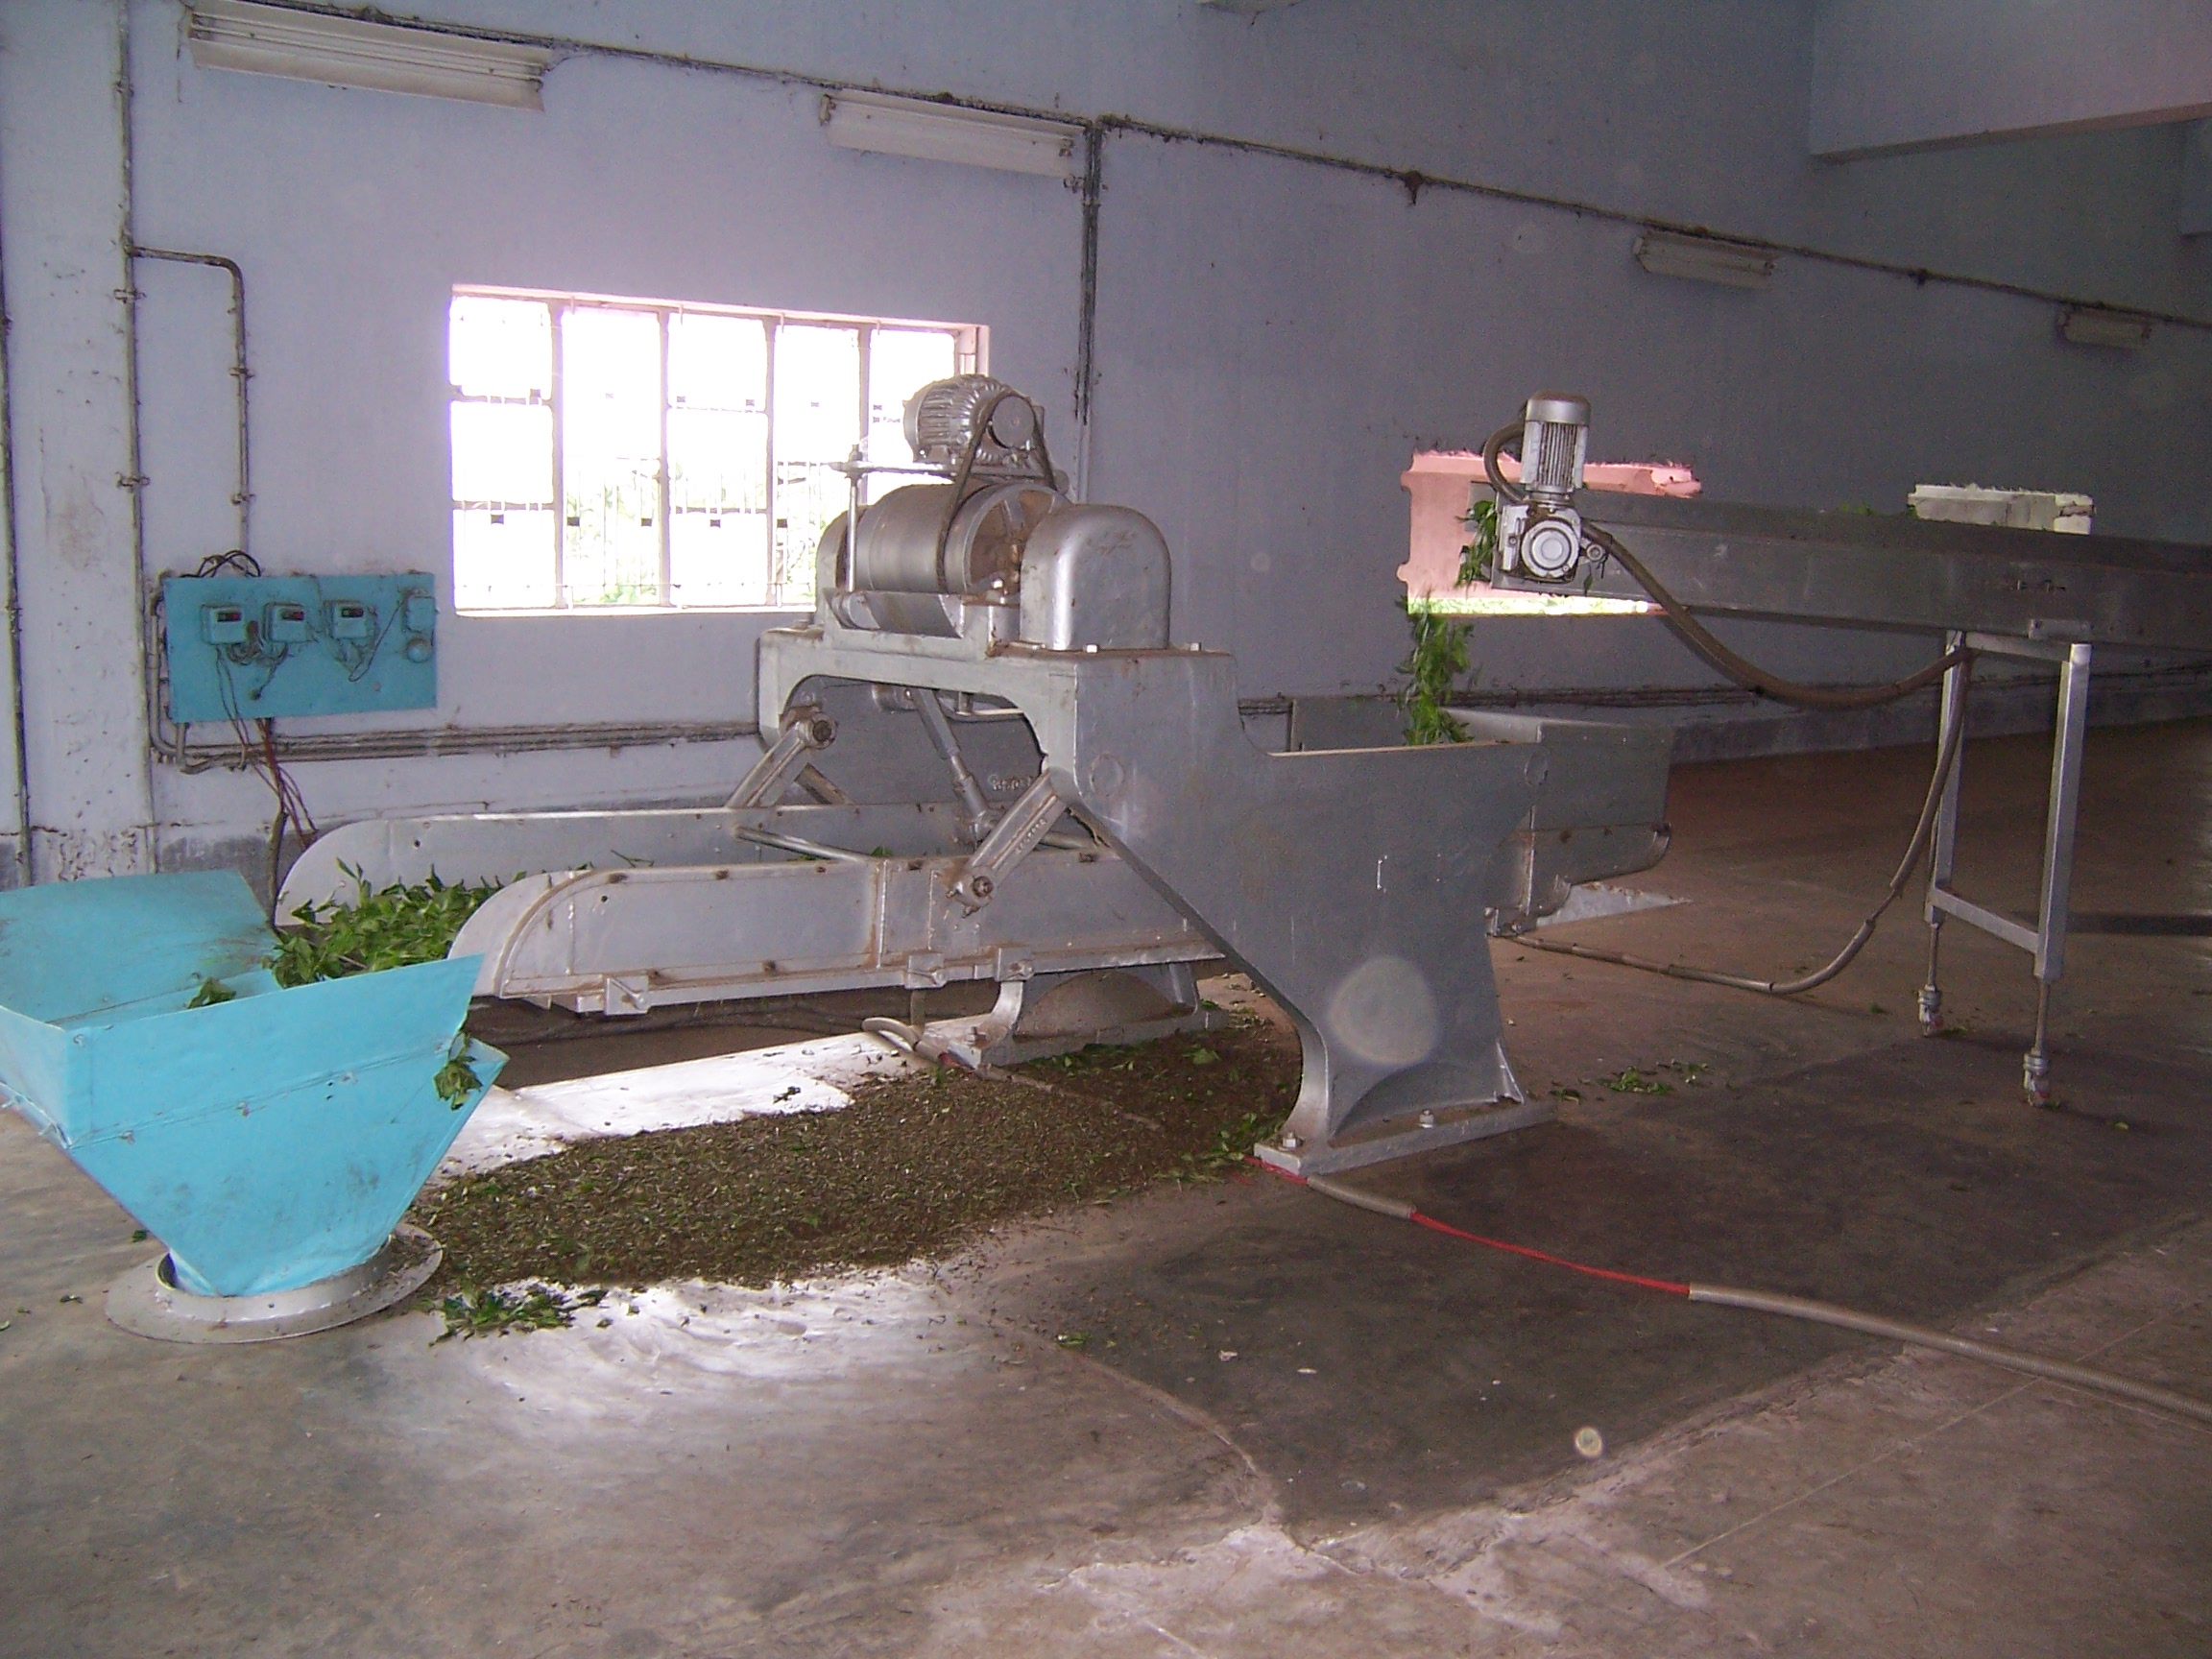 A machine used in the process of turning tea leaves into tea